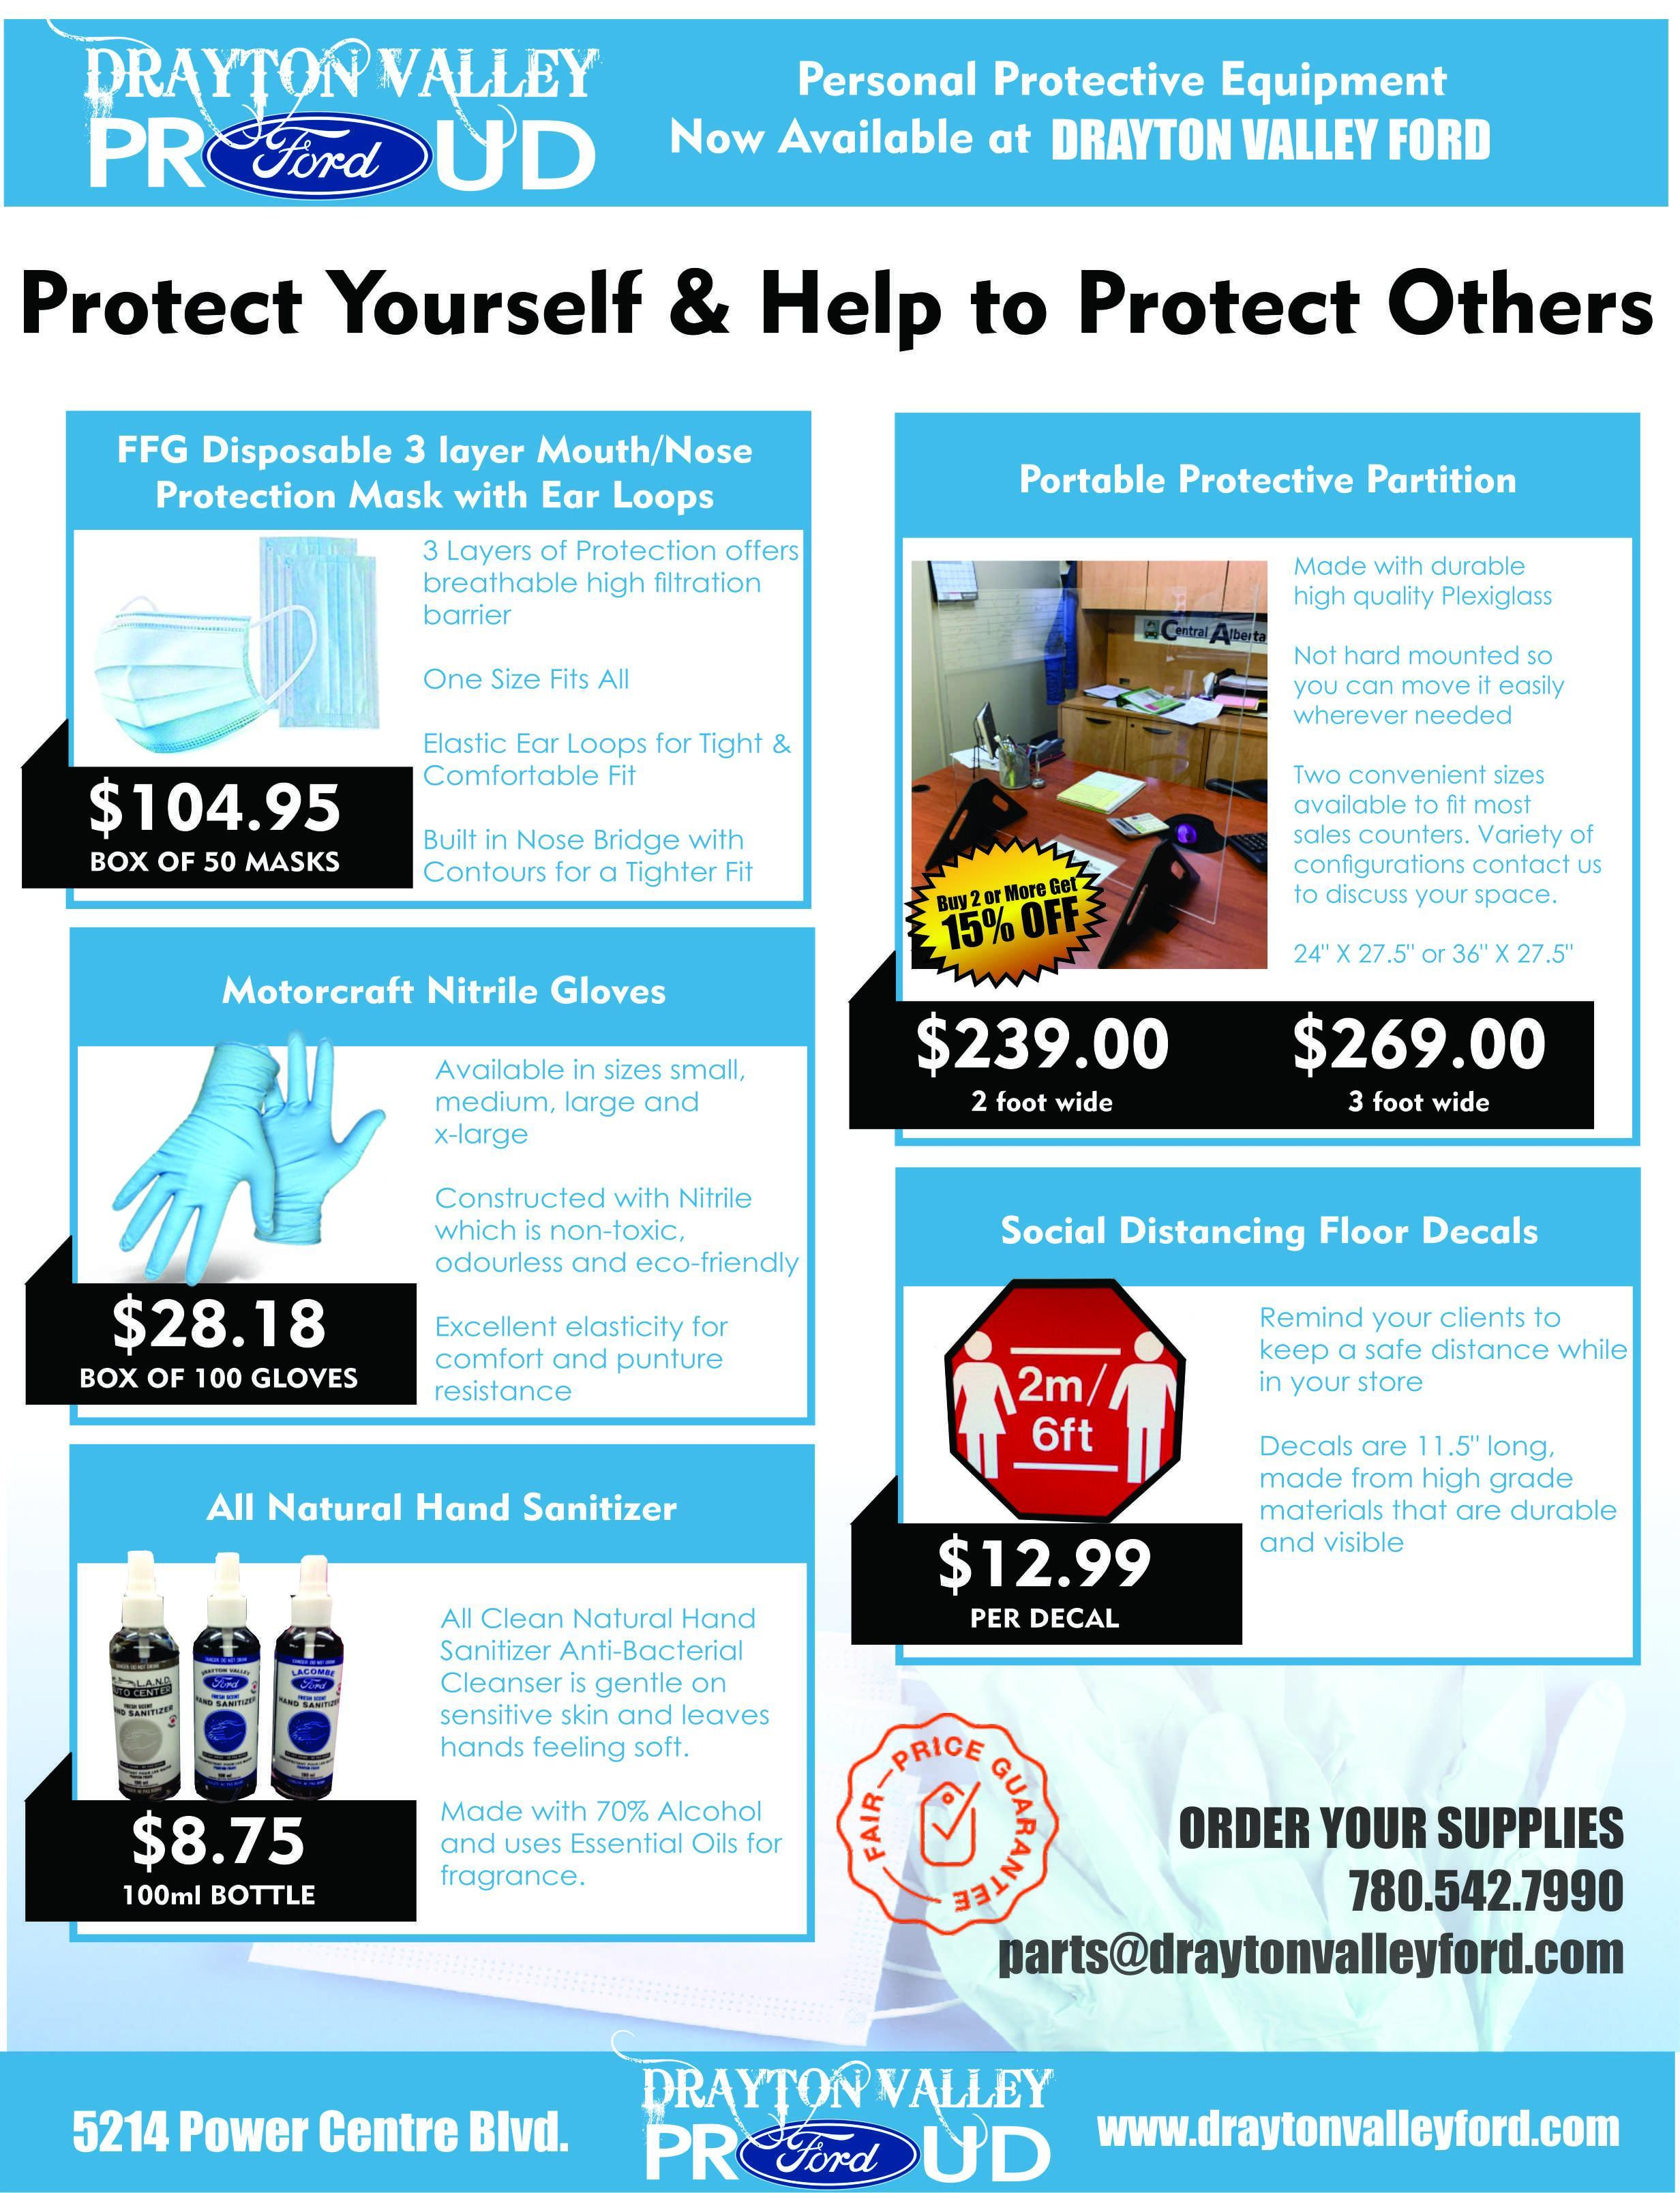 Personal Protective Equipment AVAILABLE NOW at Drayton Valley Ford